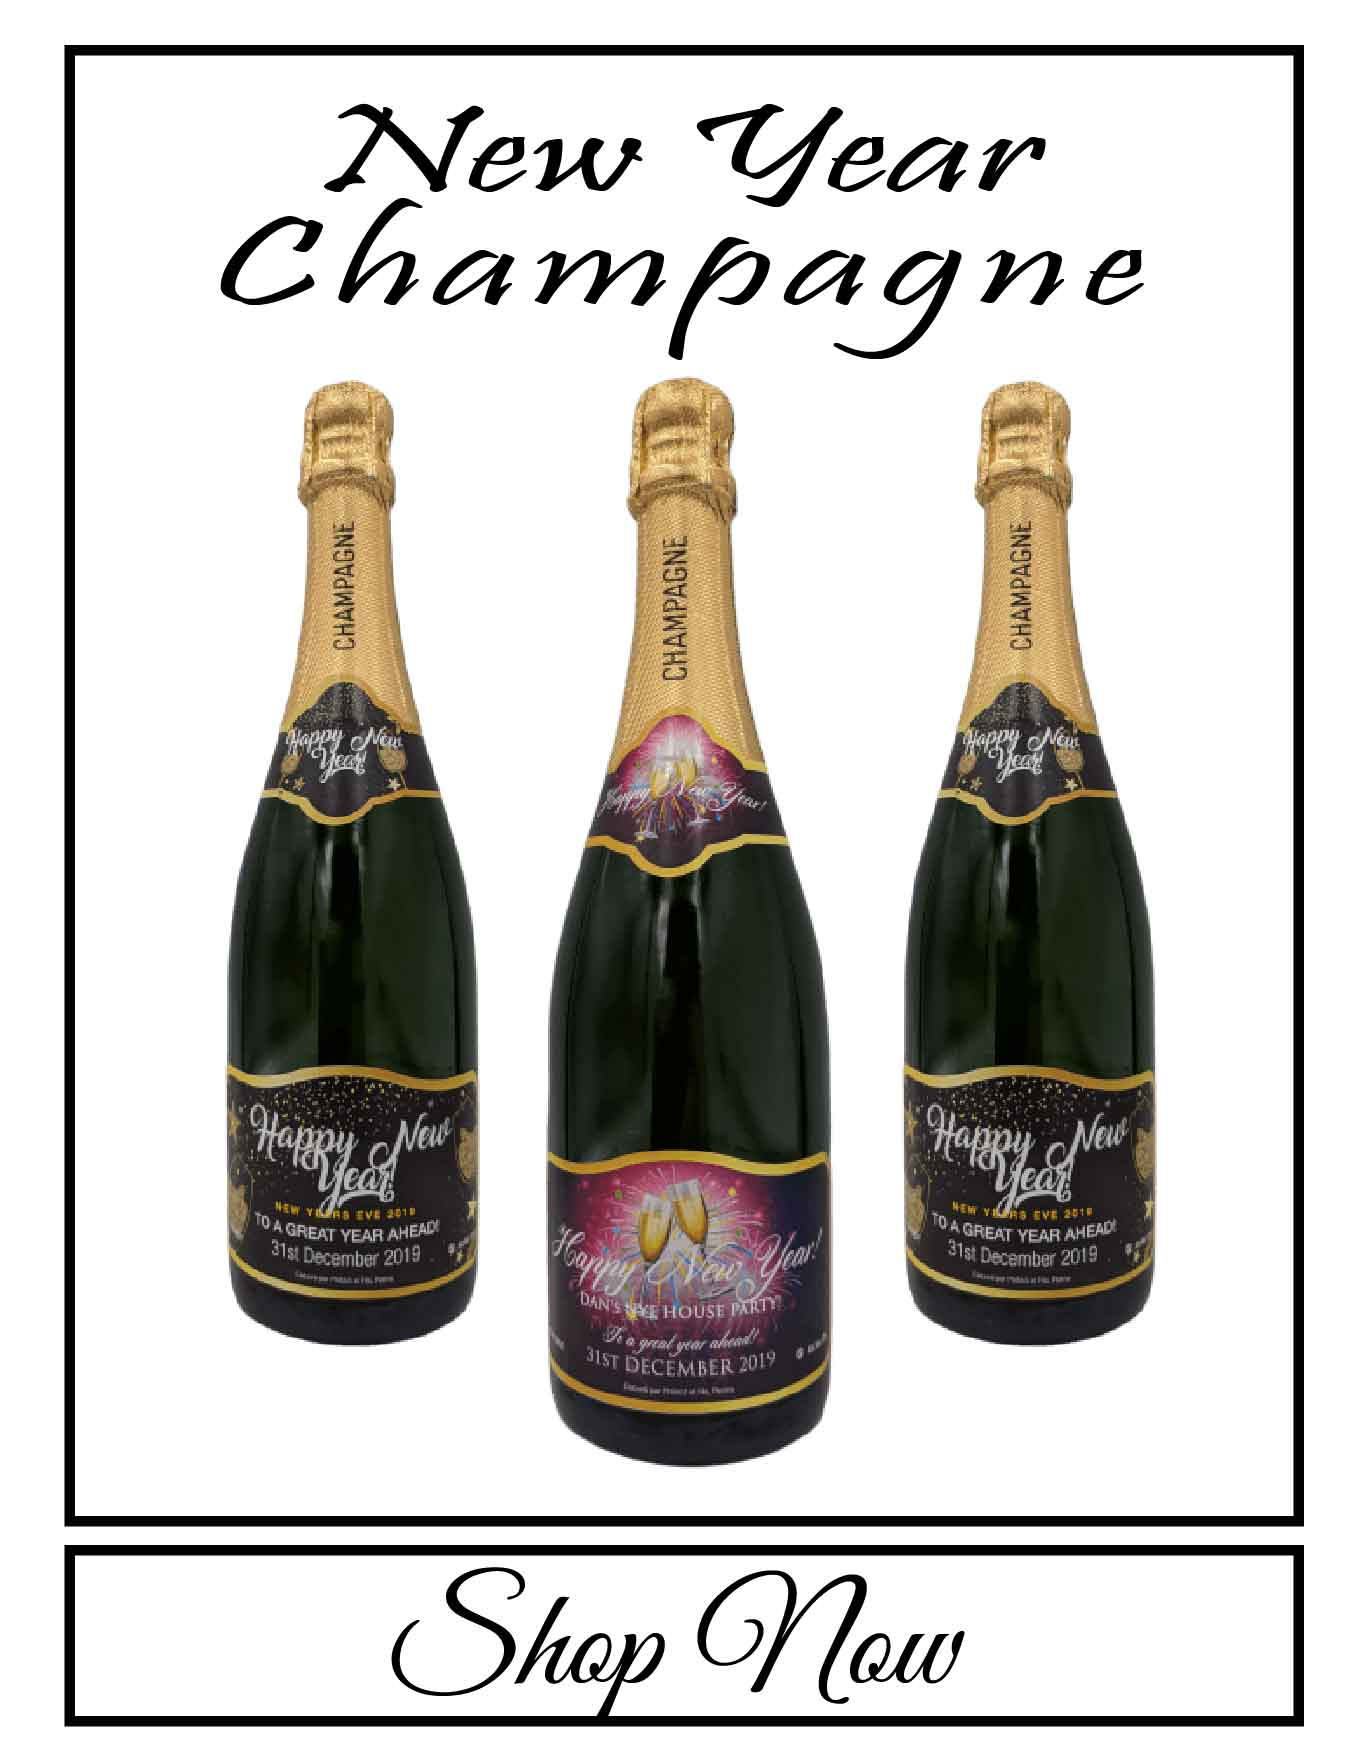 personalised Champagne bottle label delivery uk sparkling wine new year gift present